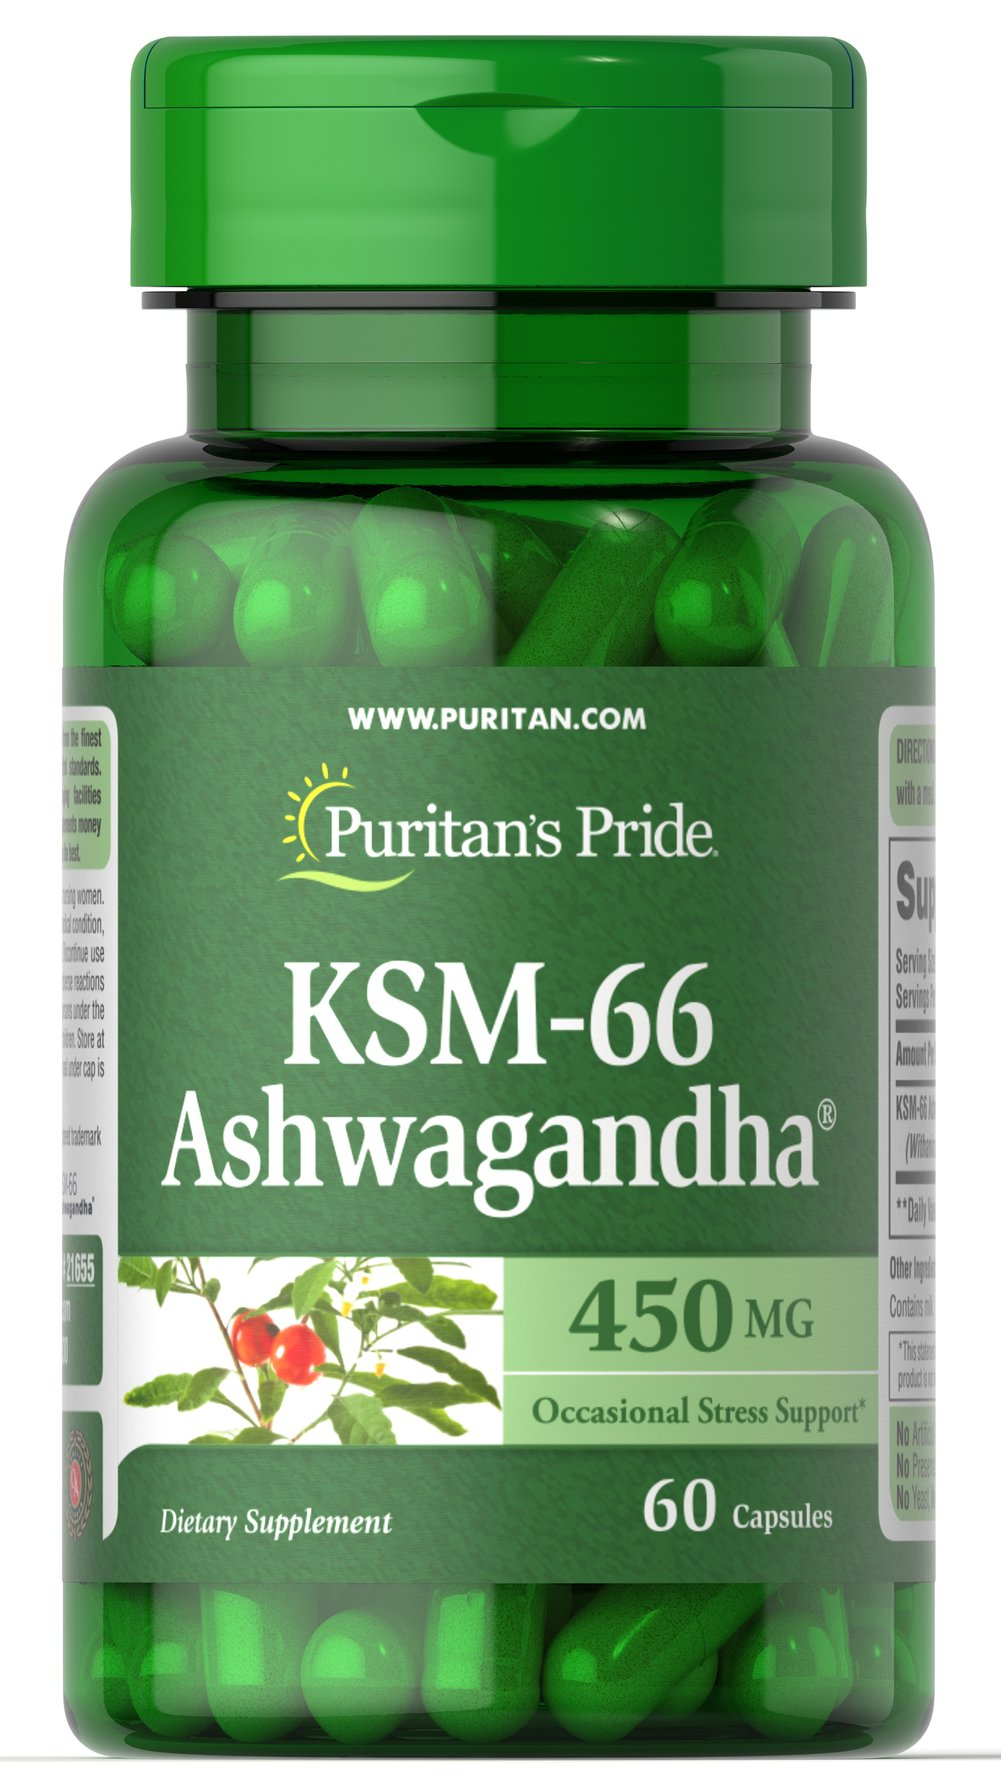 Products with KSM-66 – KSM-66